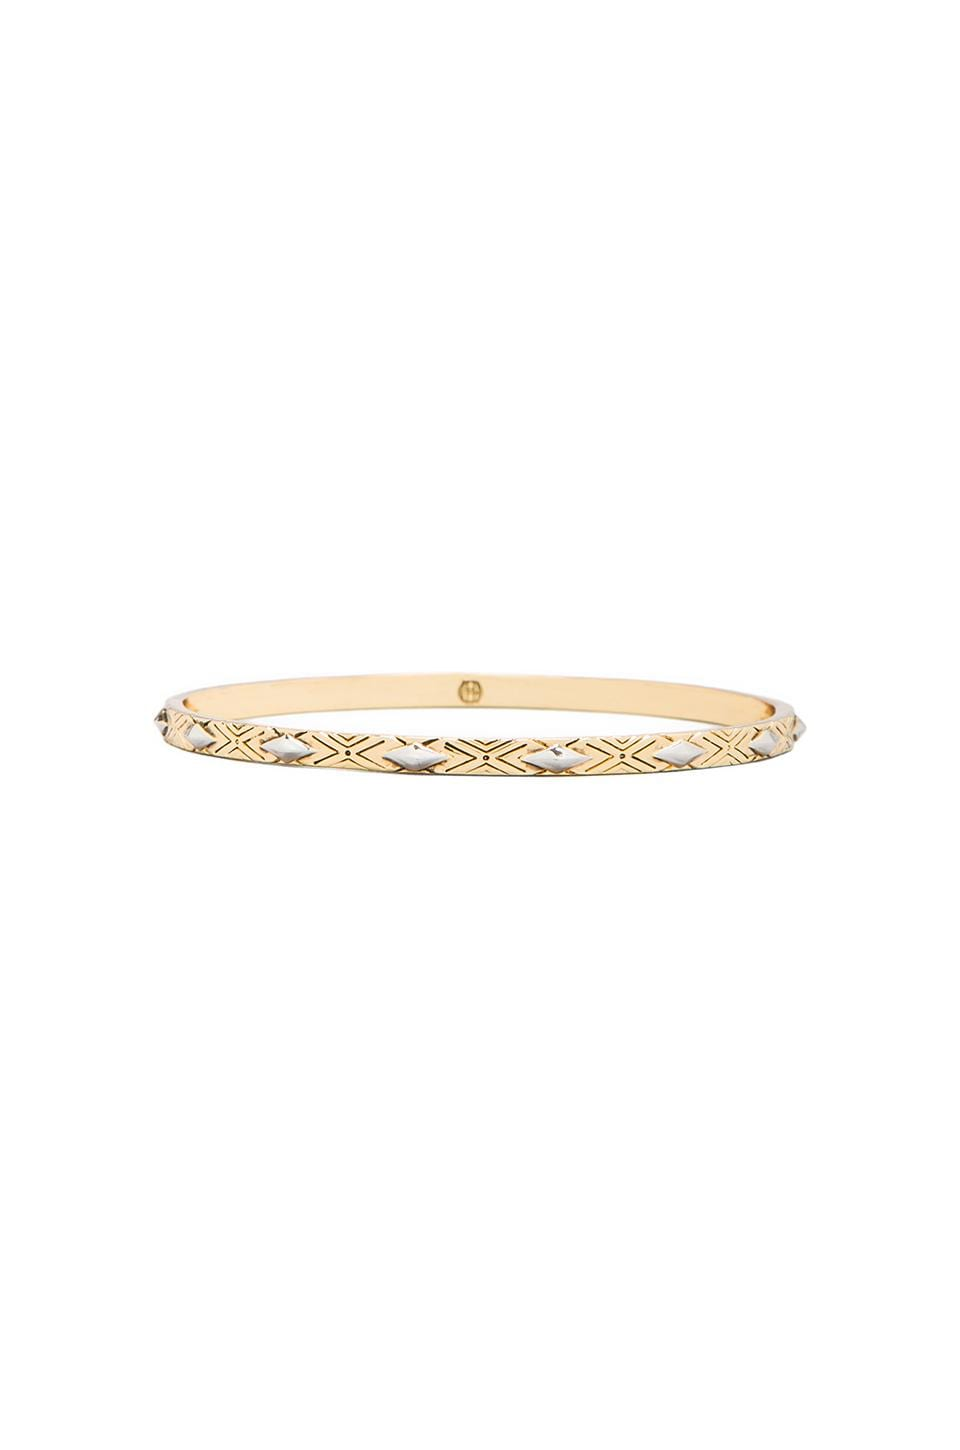 House of Harlow 1960 House of Harlow Marquis Stack Bangles in Gold